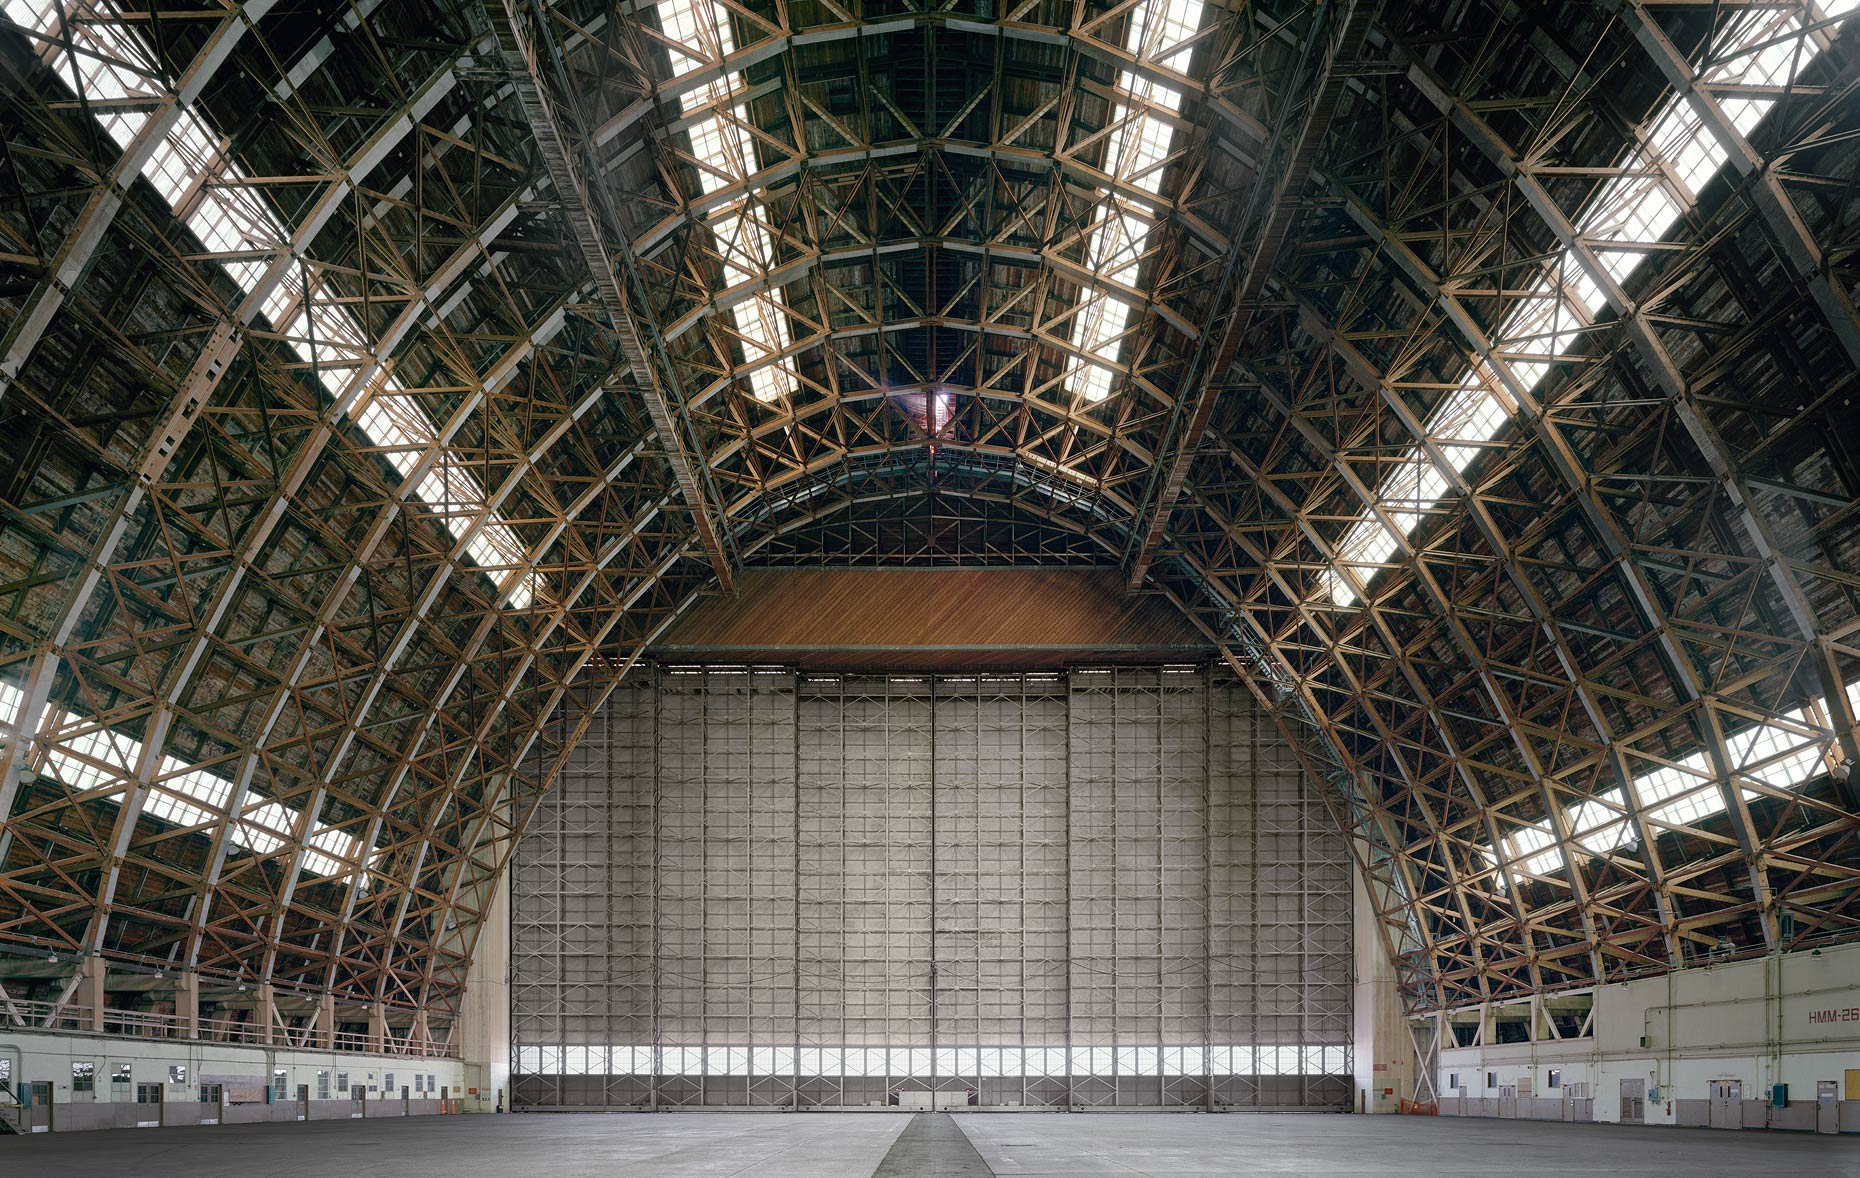 Hangar No. 2, Marine Corps Air Station Tustin, Tustin, California, 2015